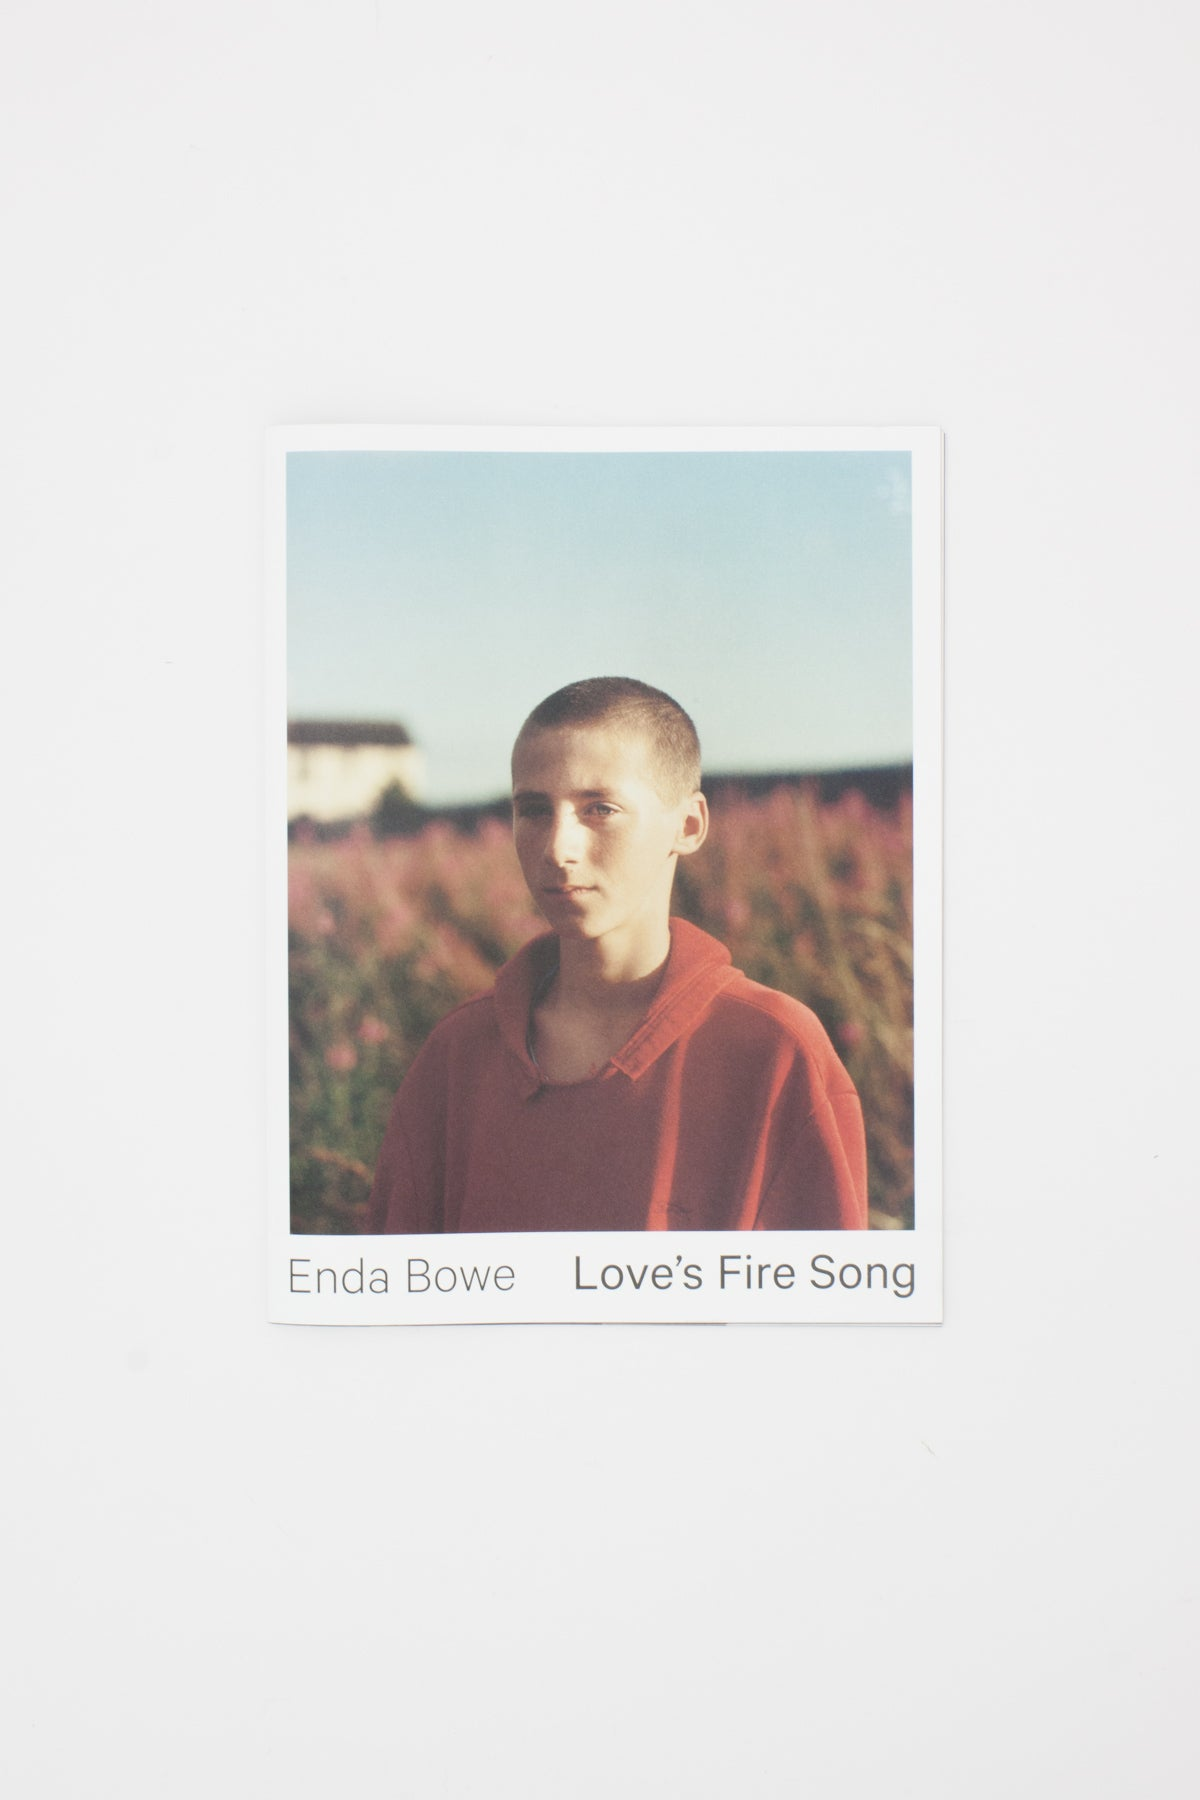 Love's Fire Song - Enda Bowe